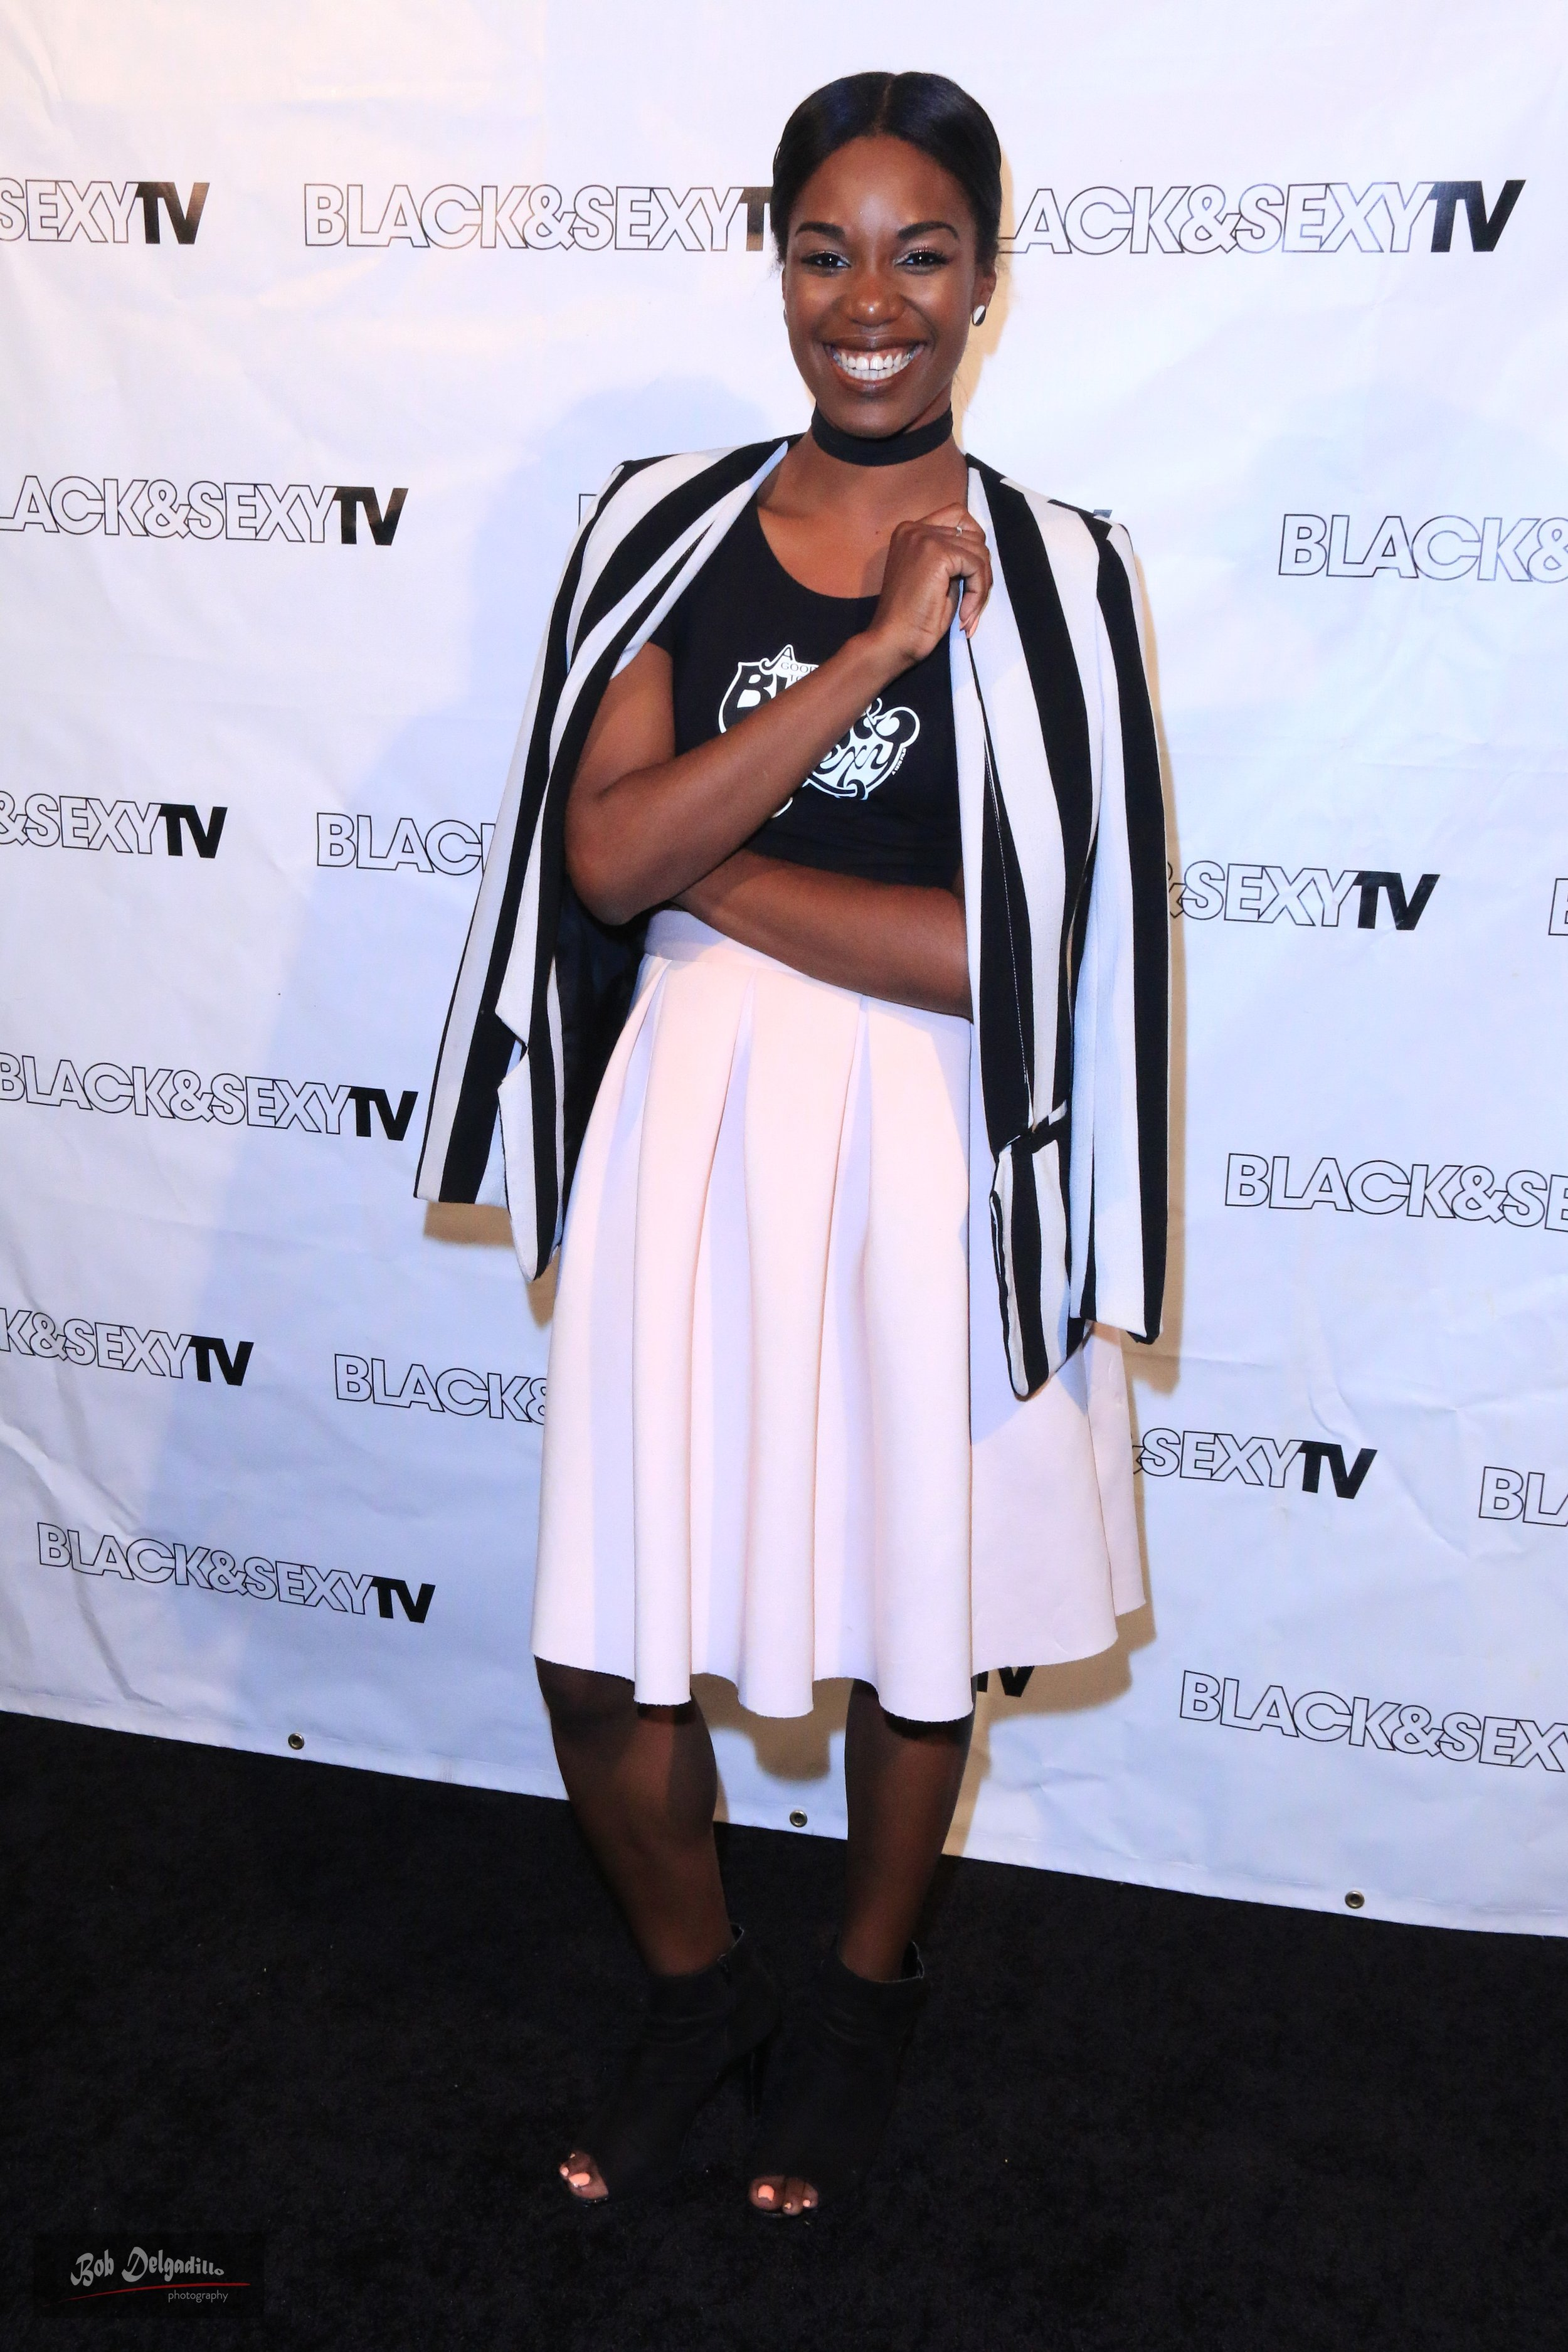 Hosting the Black & Sexy TV Season Finale Panel